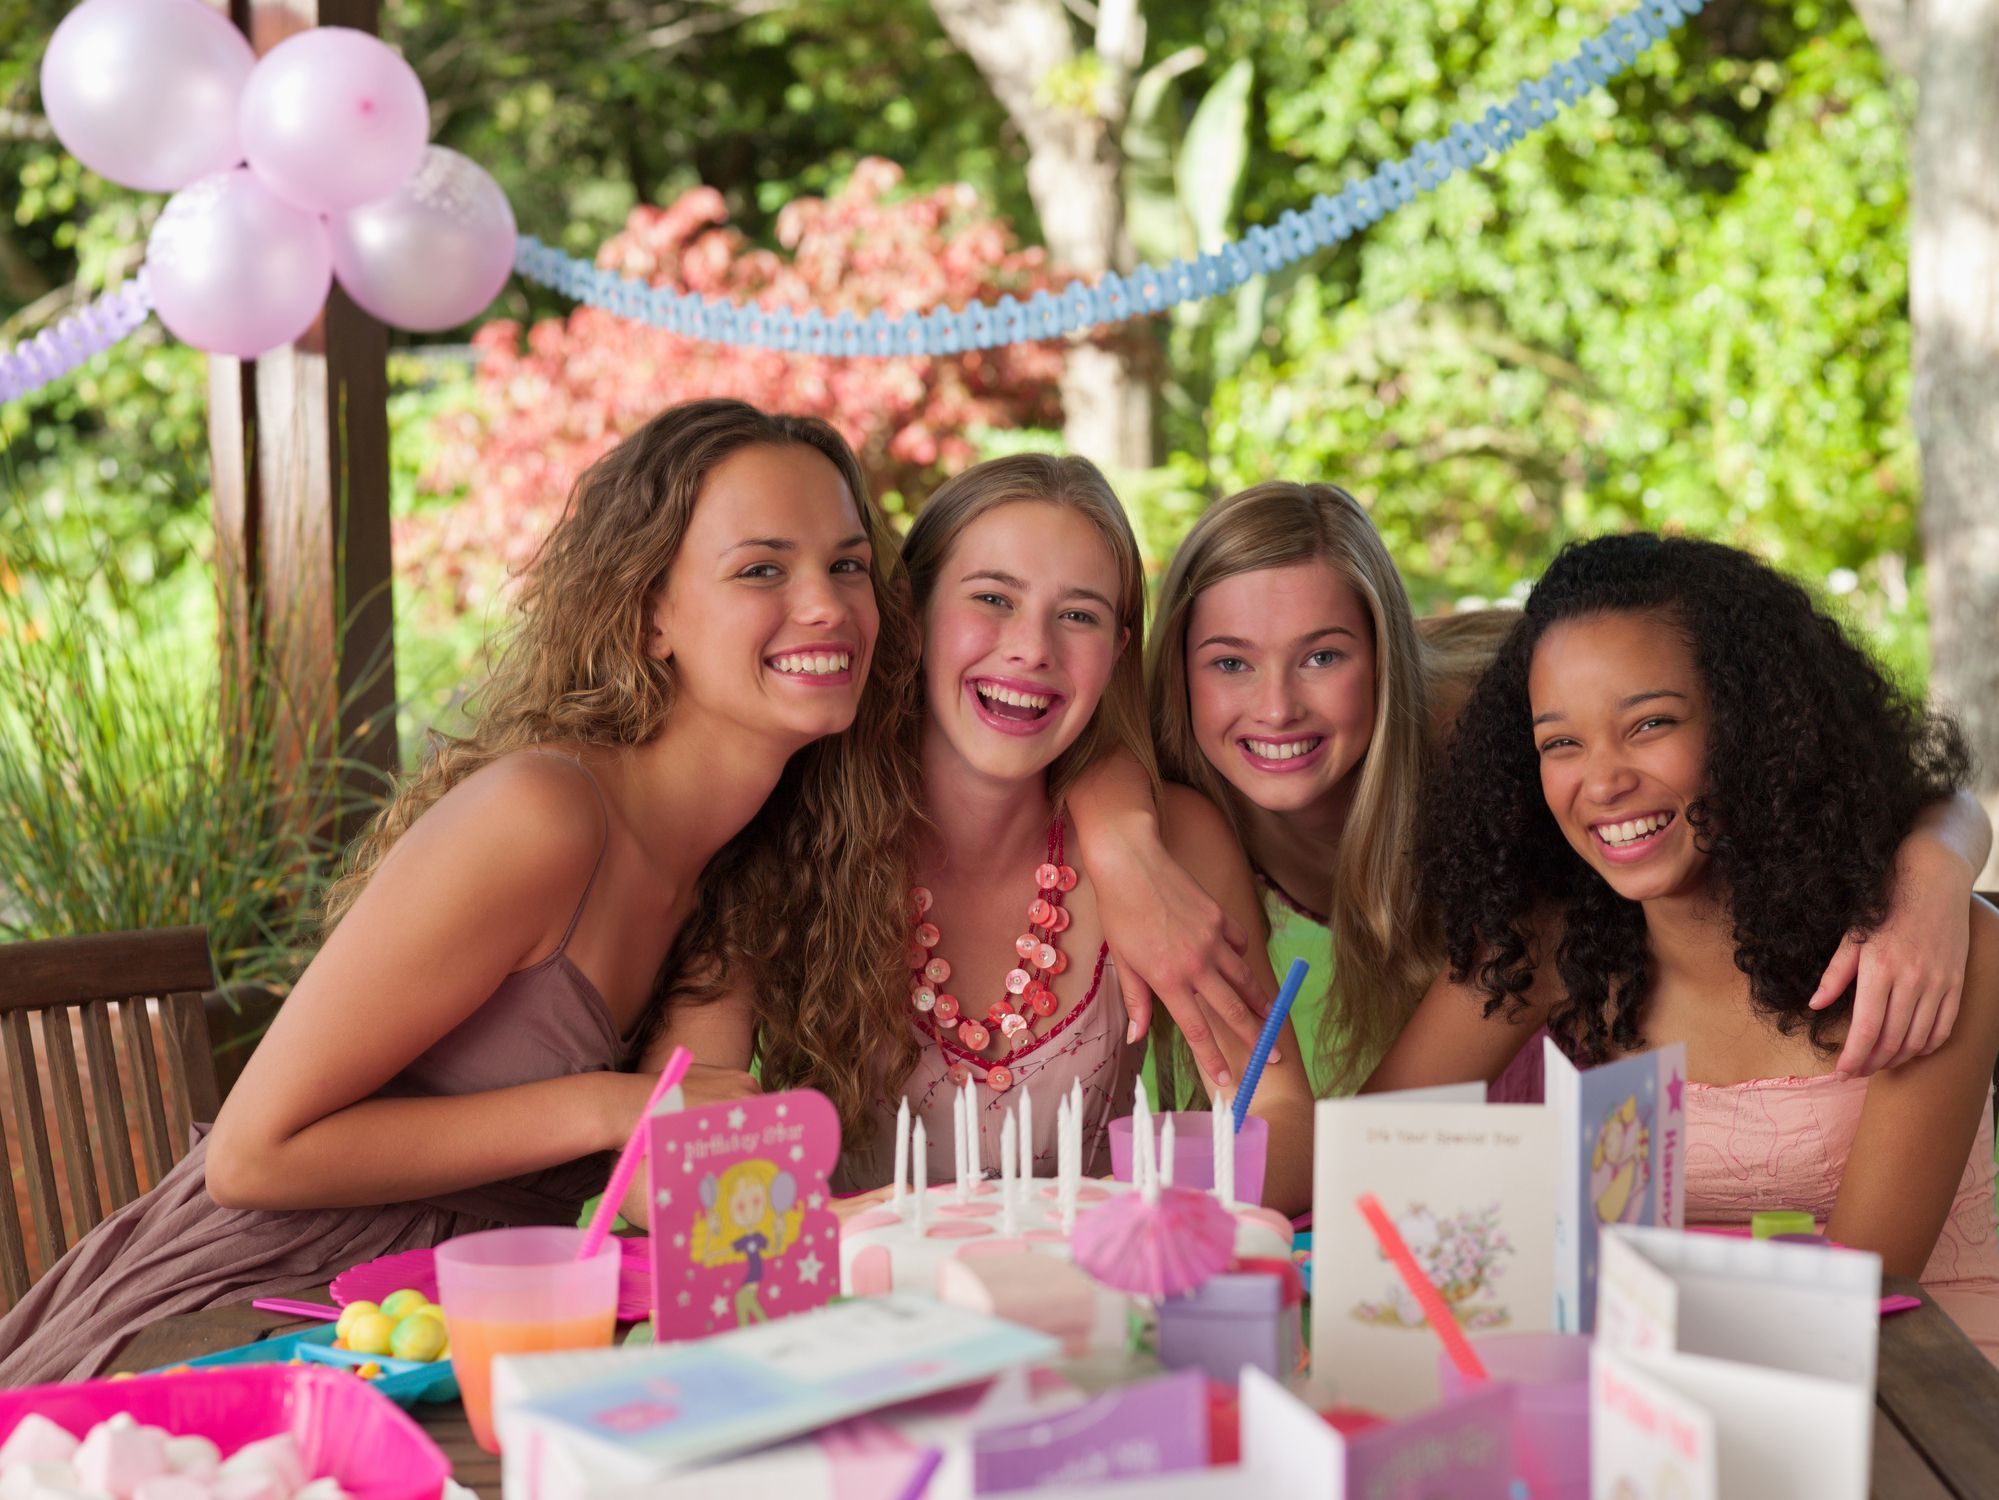 party games teens will actually want to play | teen party games and